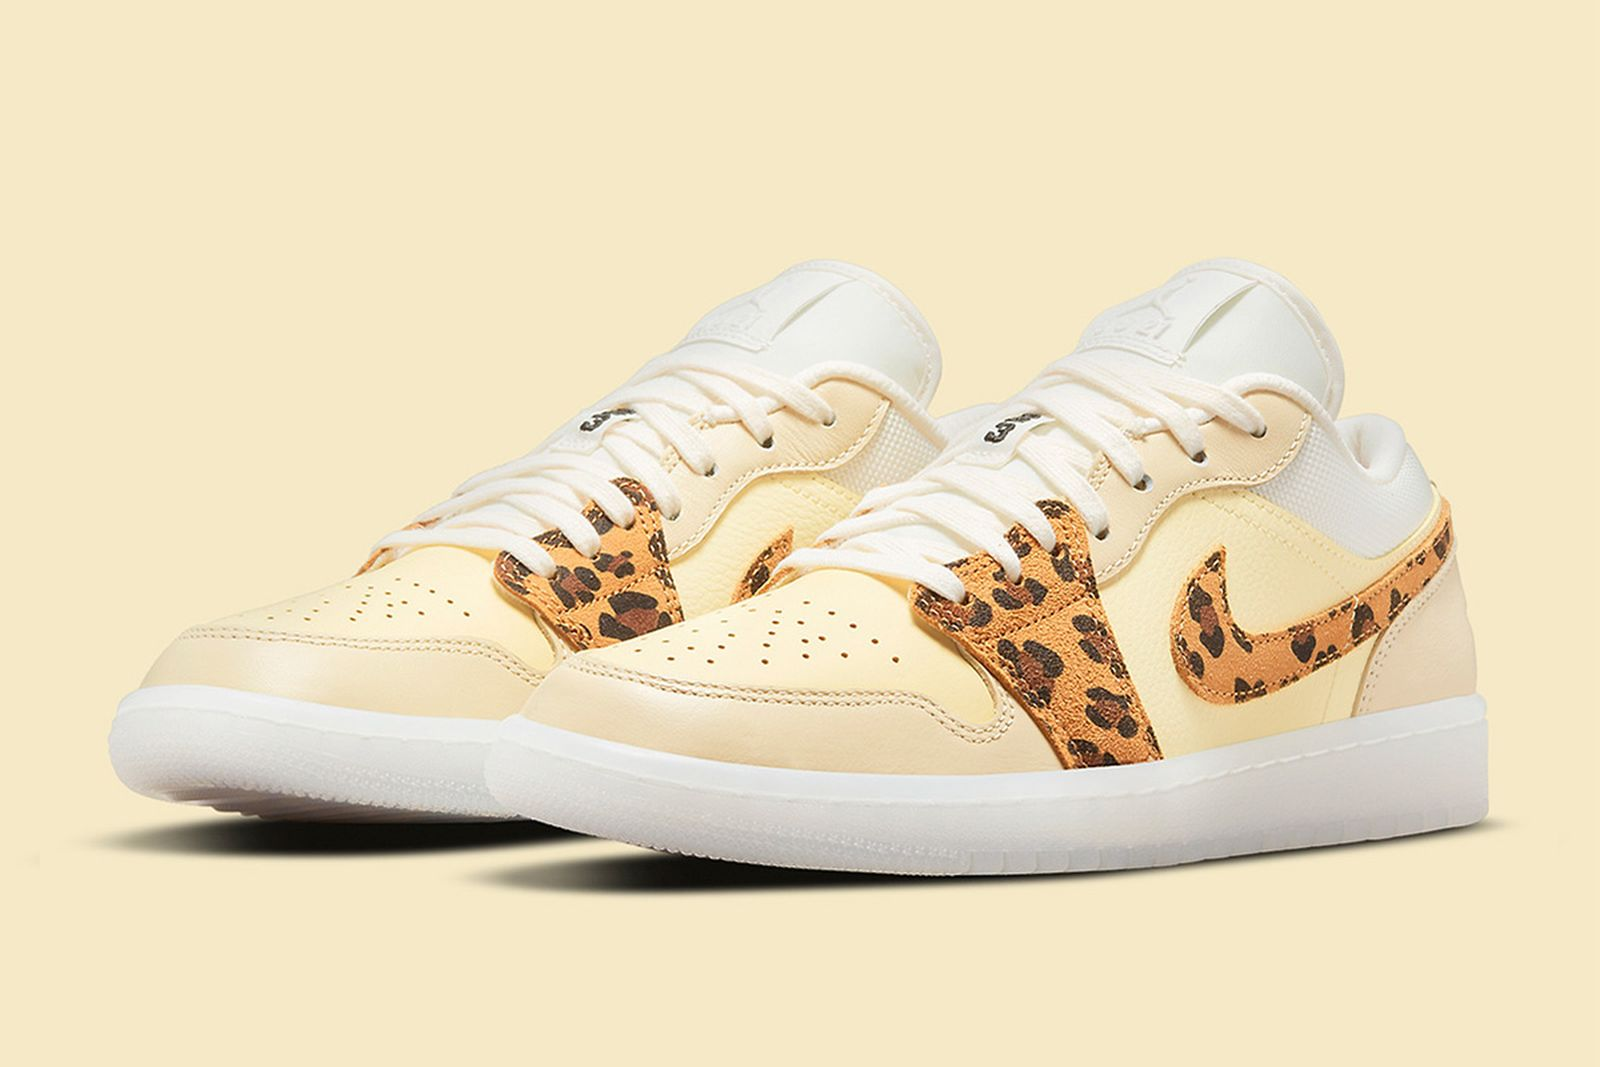 nike-snkrs-day-2021-information-001